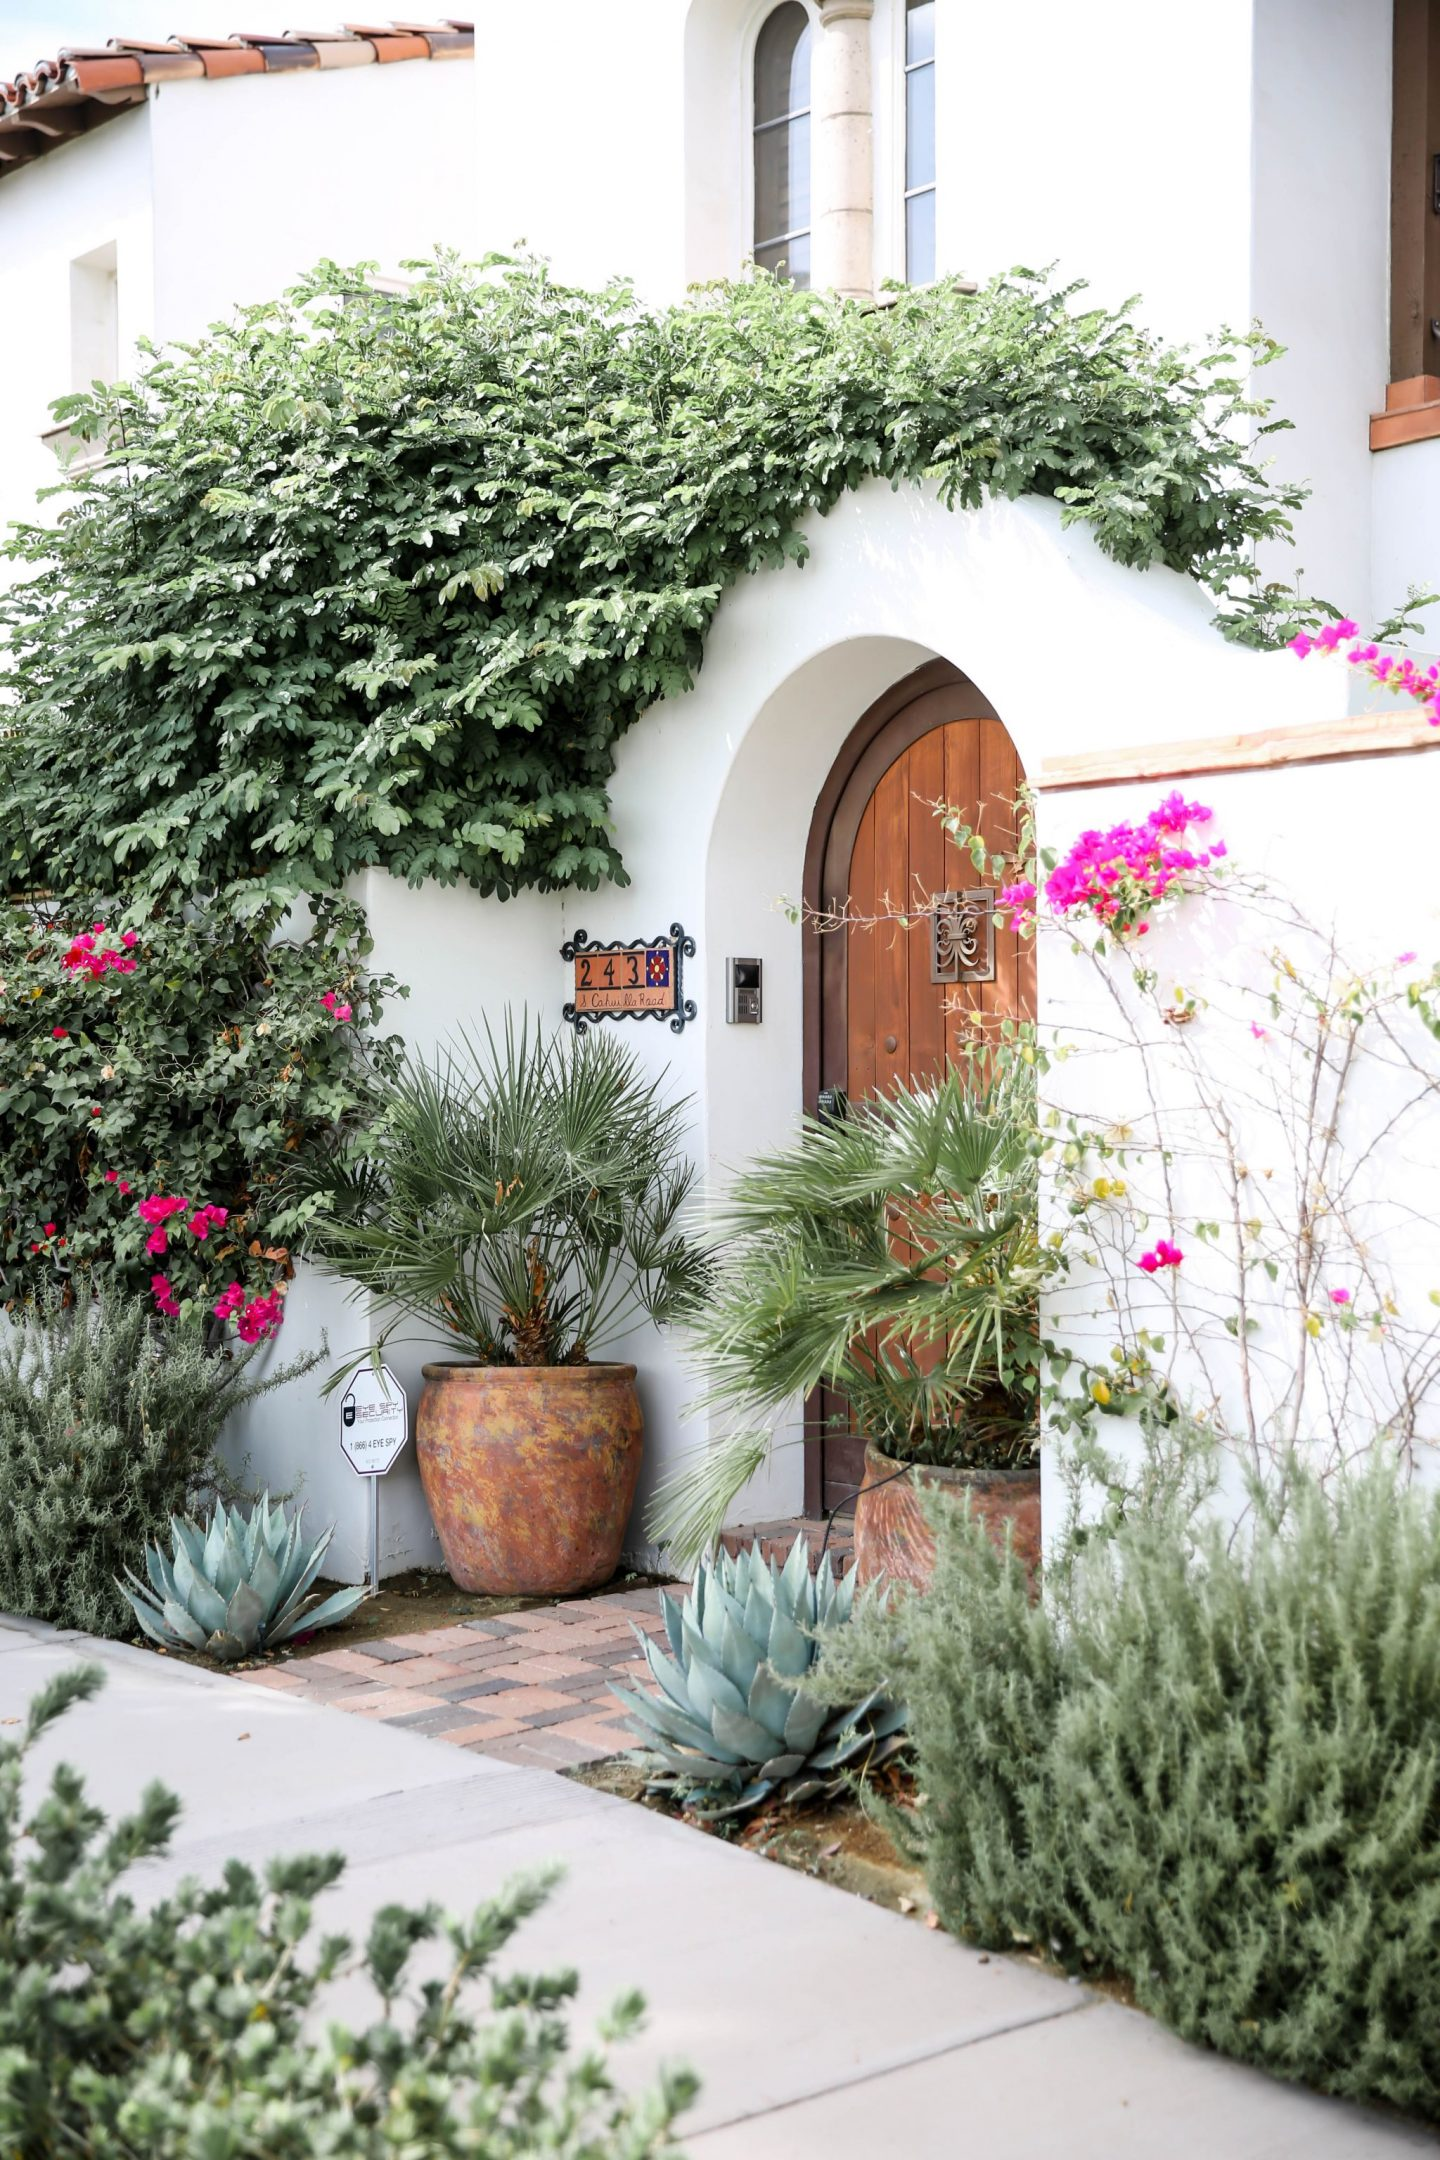 Palm Springs Bungalow - Lauren Schwaiger Travel Blog